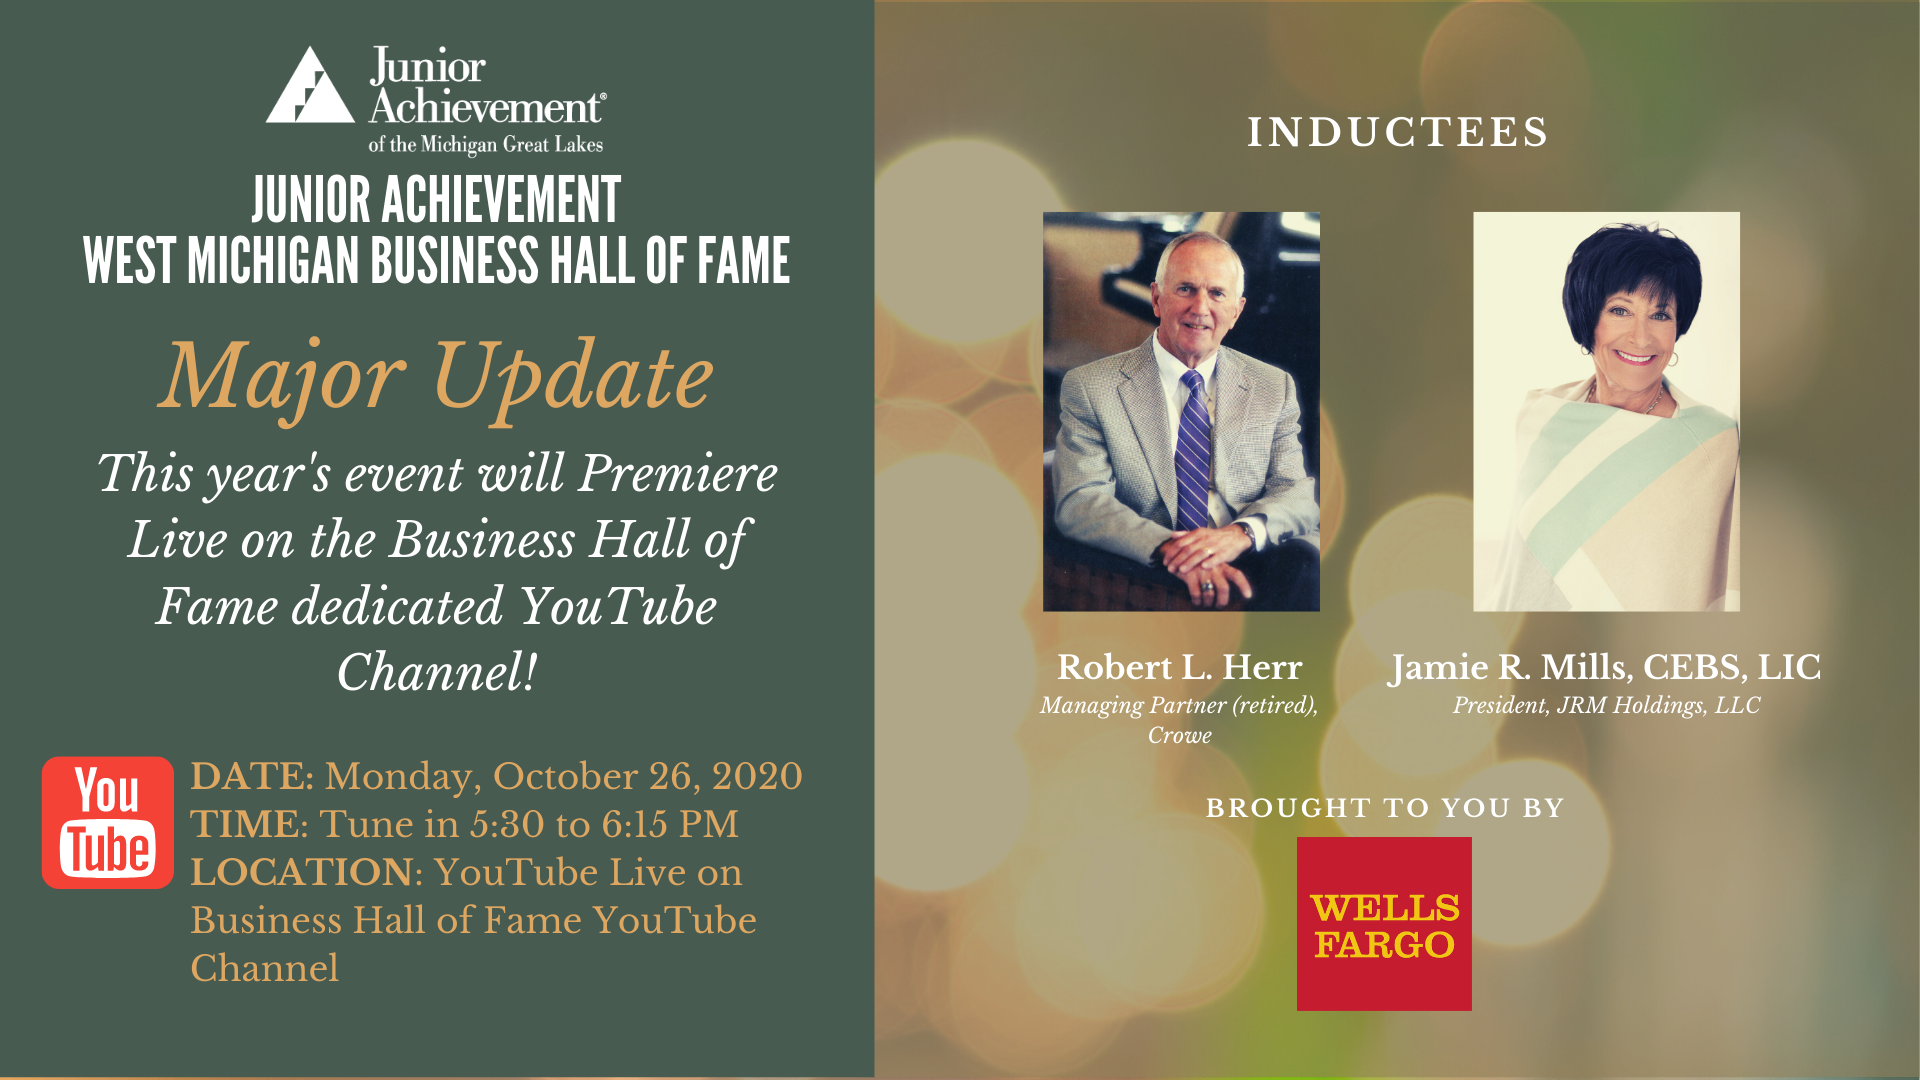 JA West Michigan Business Hall of Fame